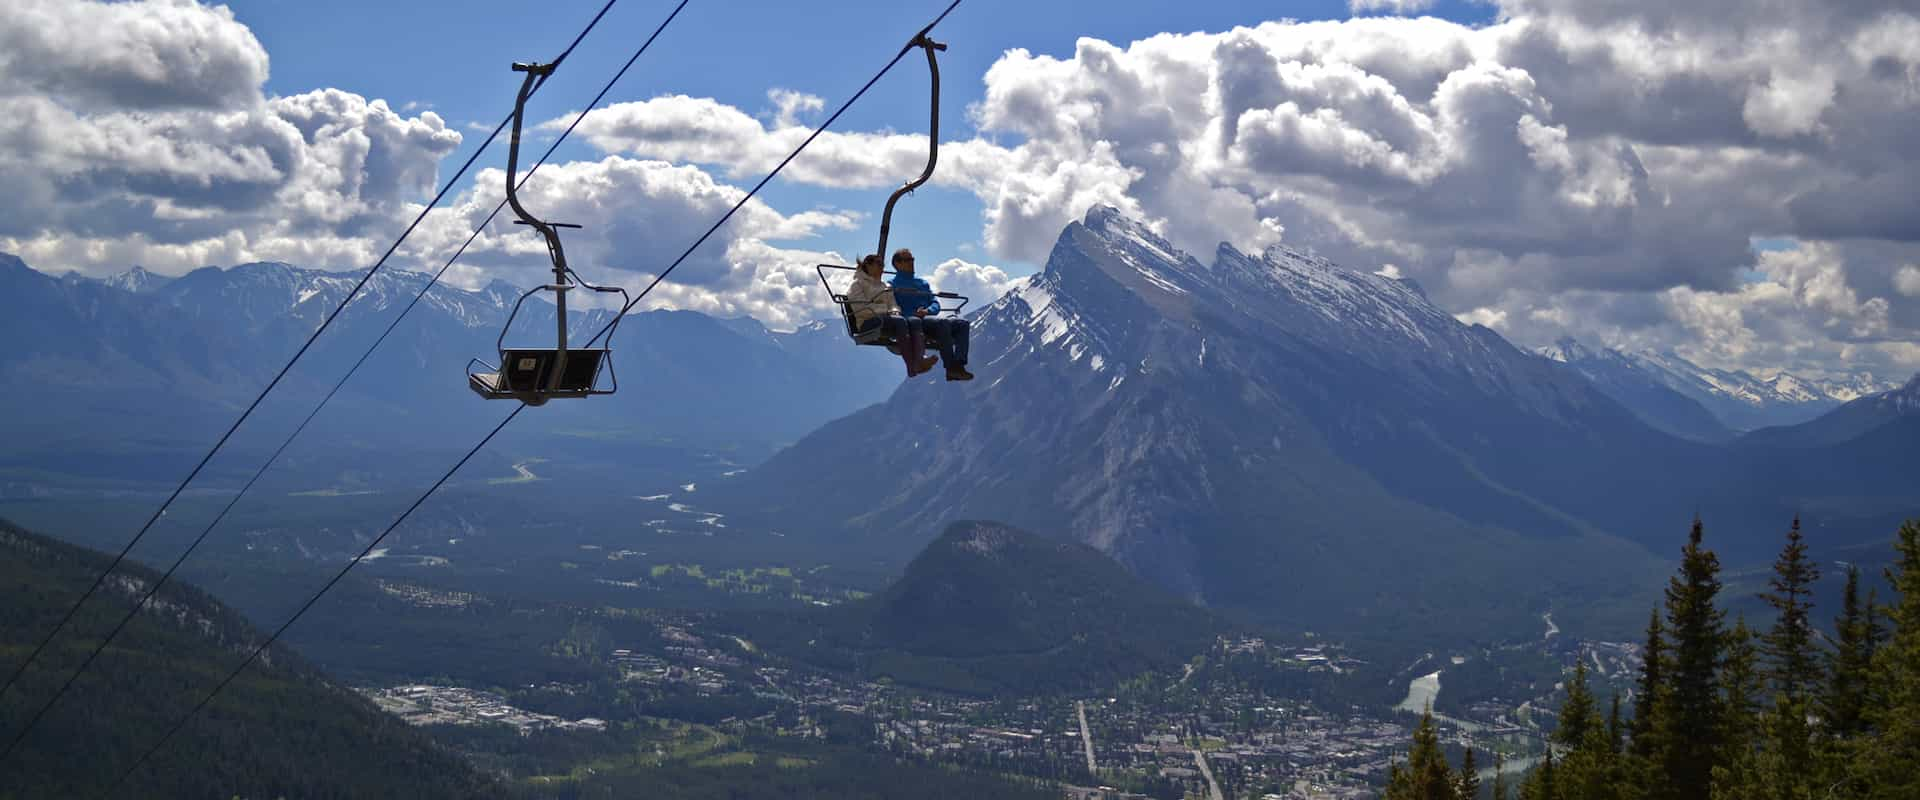 Panoramic views over Banff on the Mount Norquay Banff Sightseeing Chairlift in the Canadian Rockies